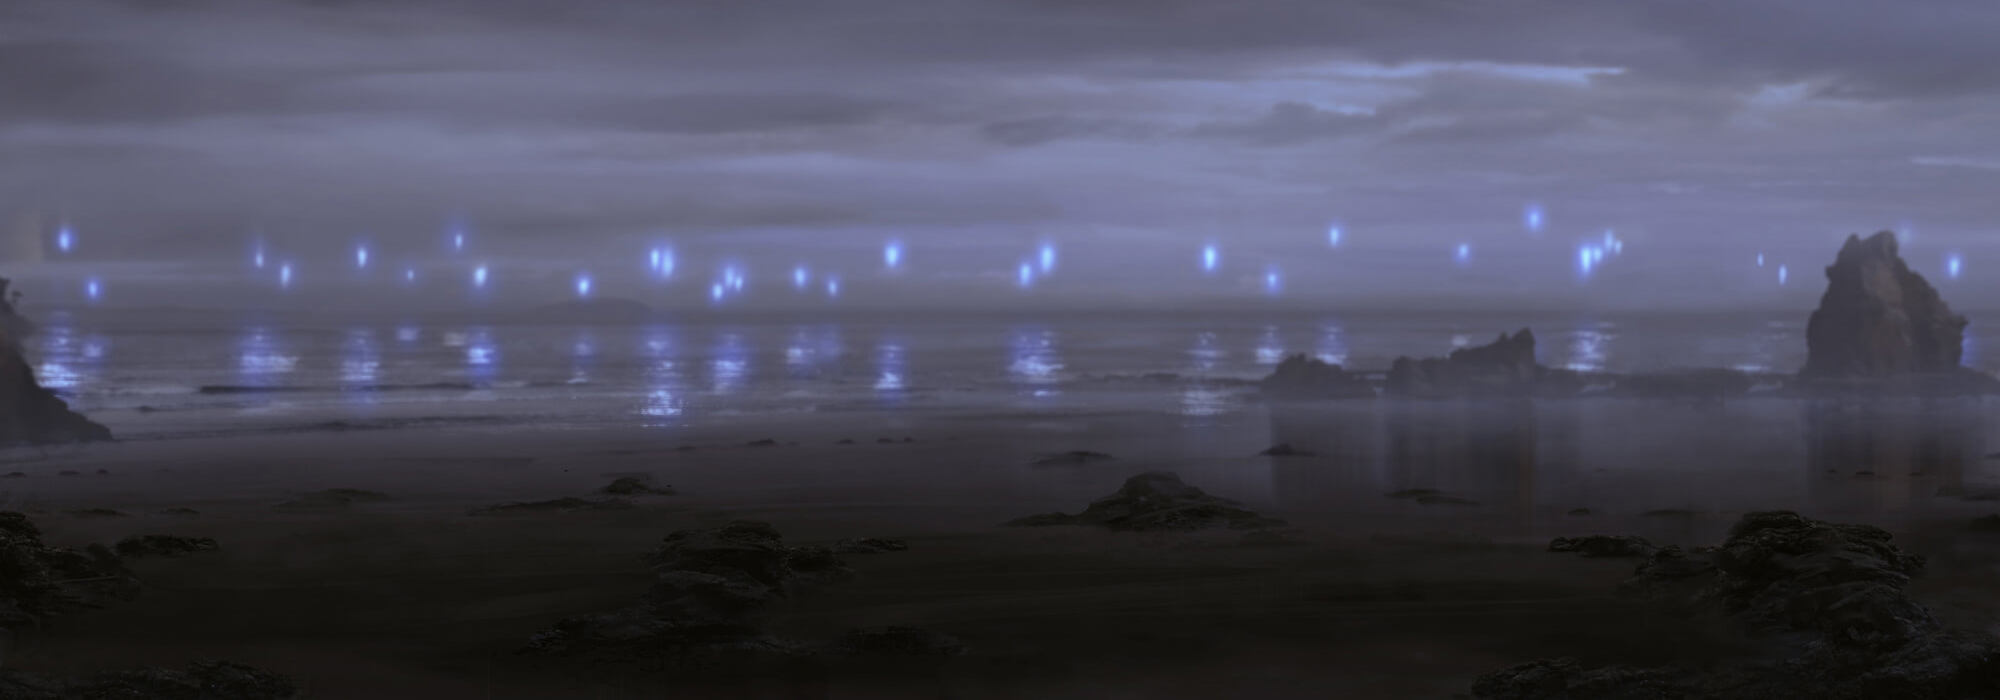 A haunting dark beach with ghostly blue fire floating over the water